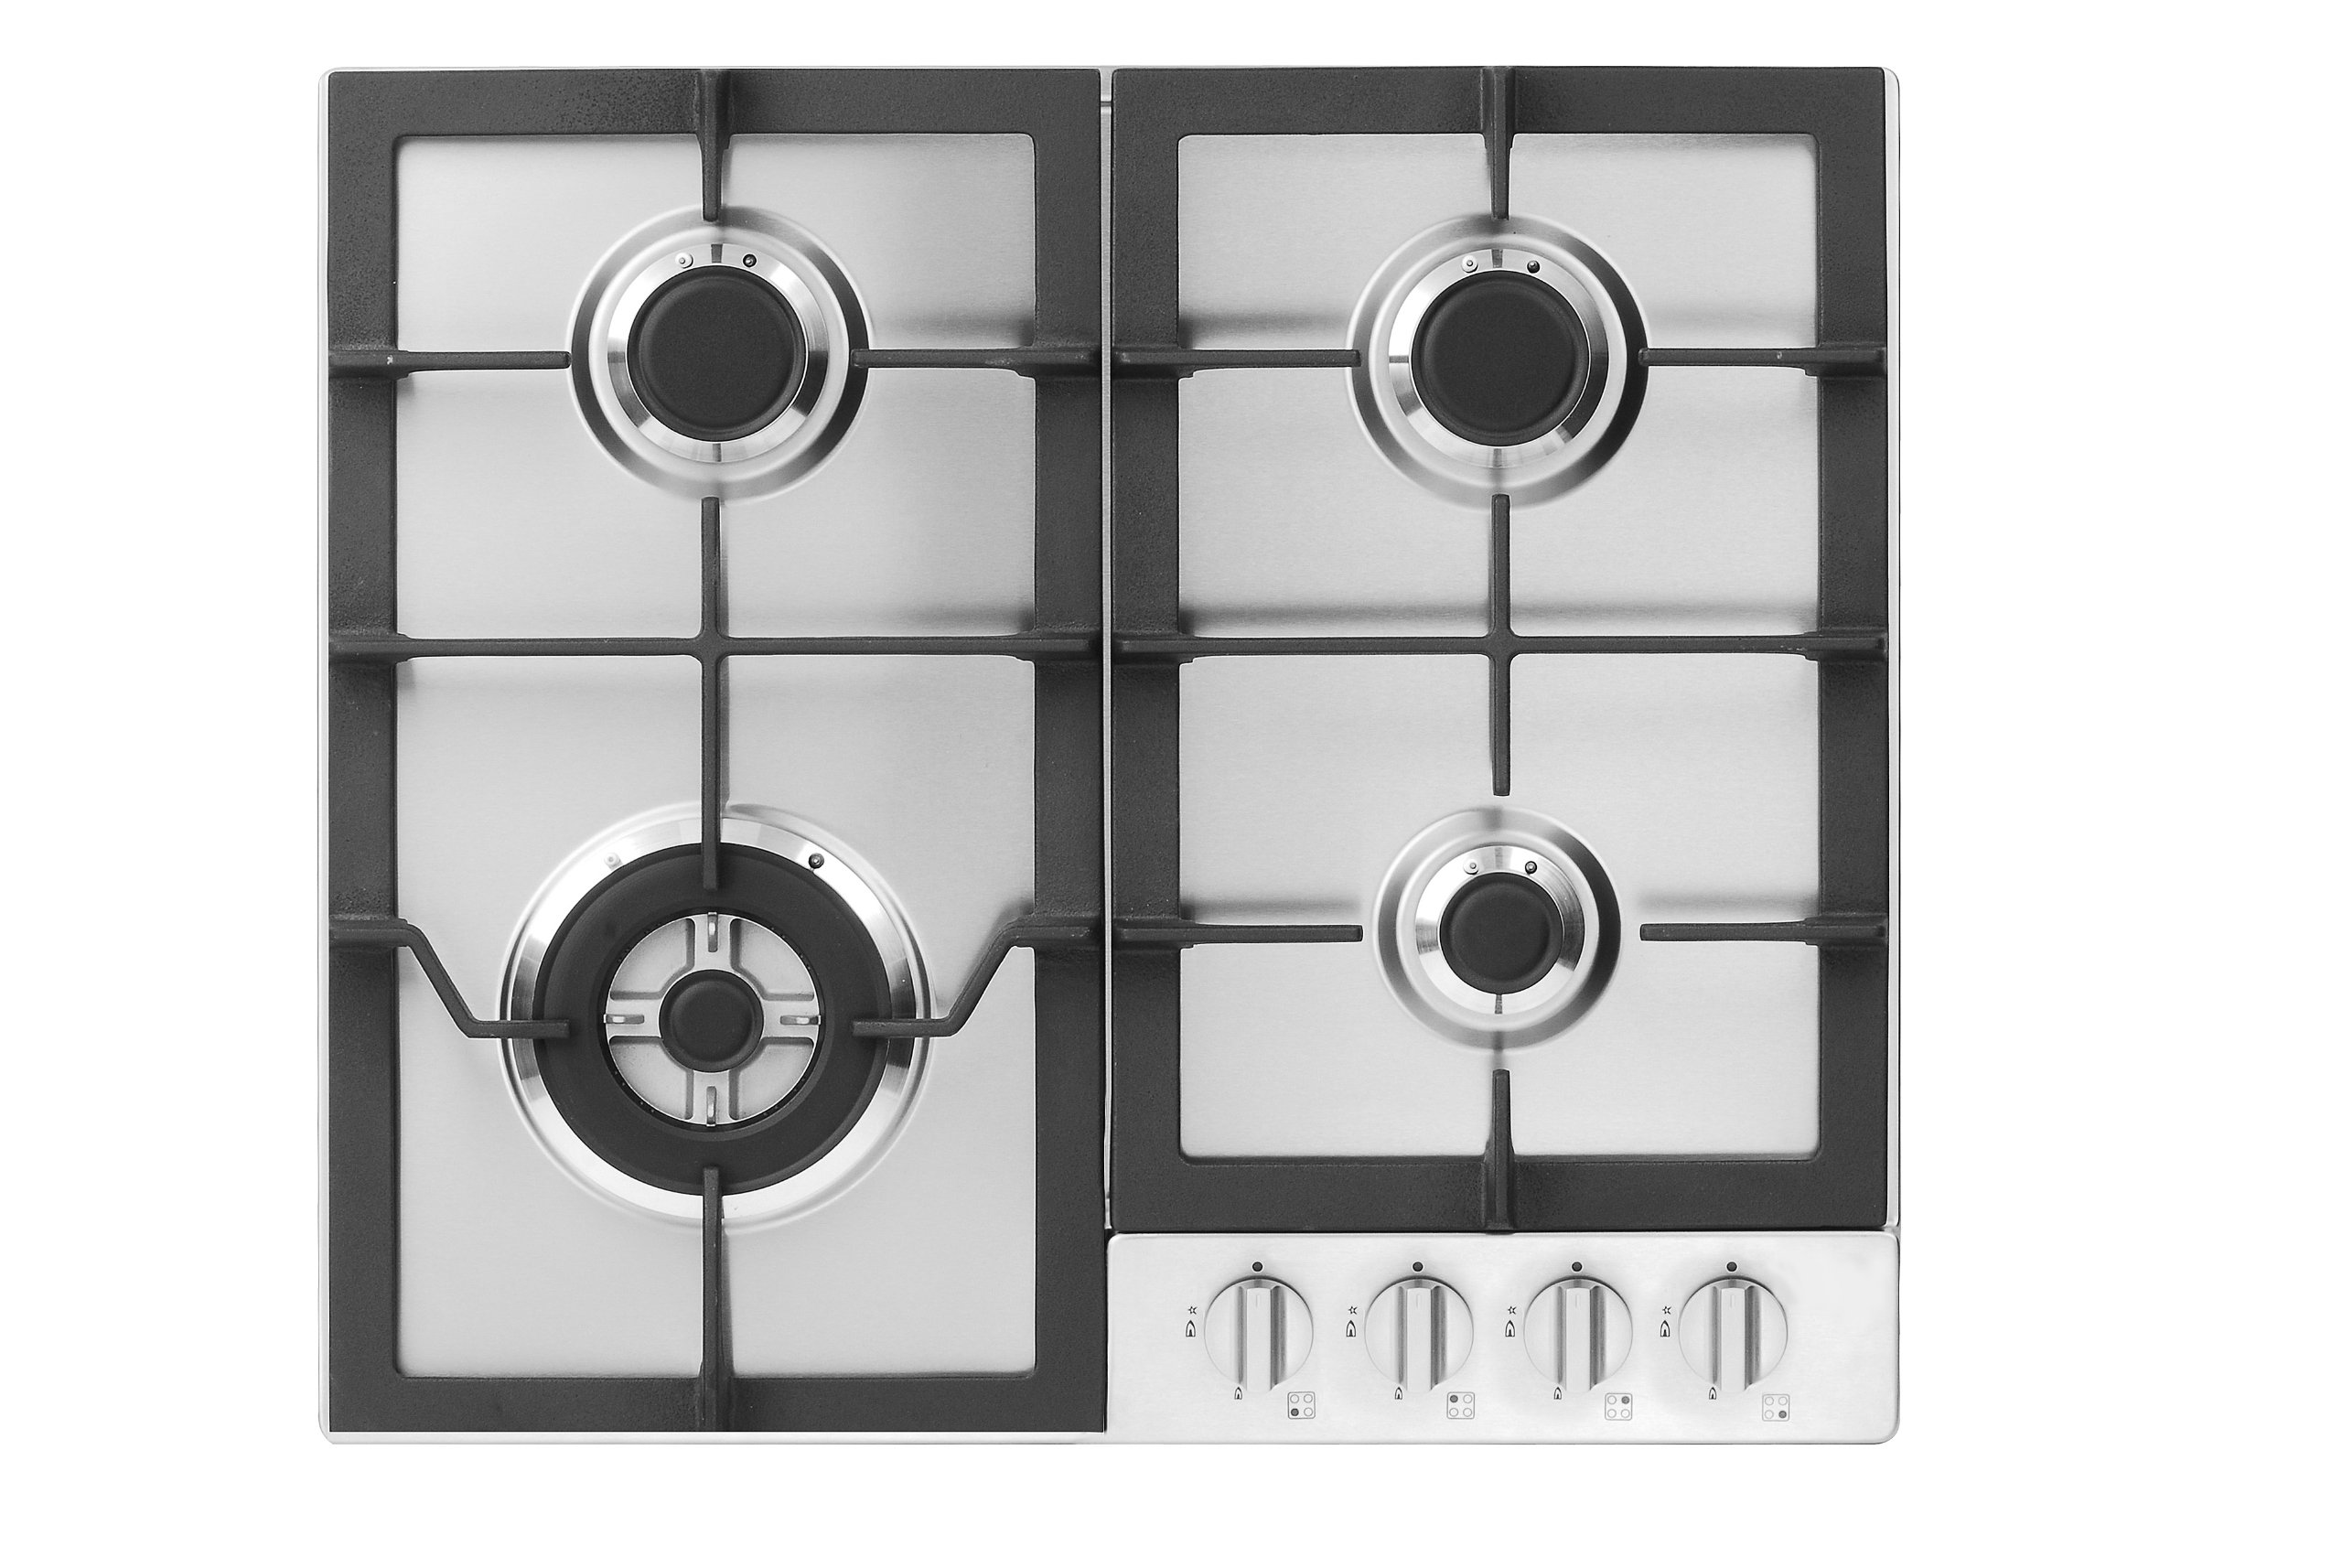 Fagor FA-640STX 4-Burner Gas Cooktop with Universal Ignition, 24-Inch, Stainless Steel by Fagor